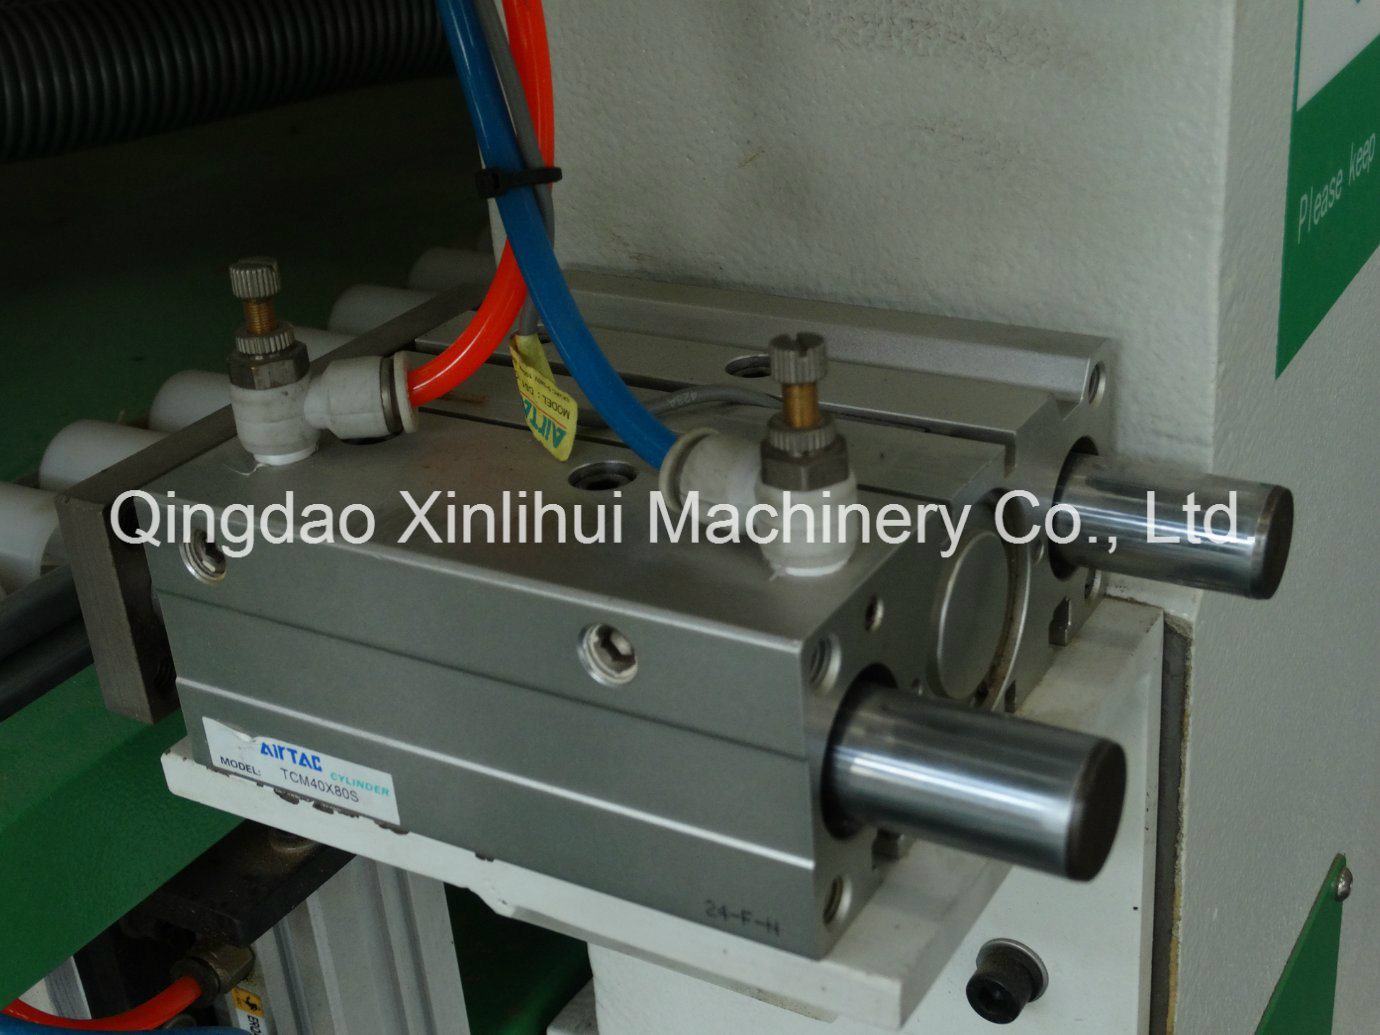 China 2018 Newest Cnc Router Automatic Wood Carving Machine